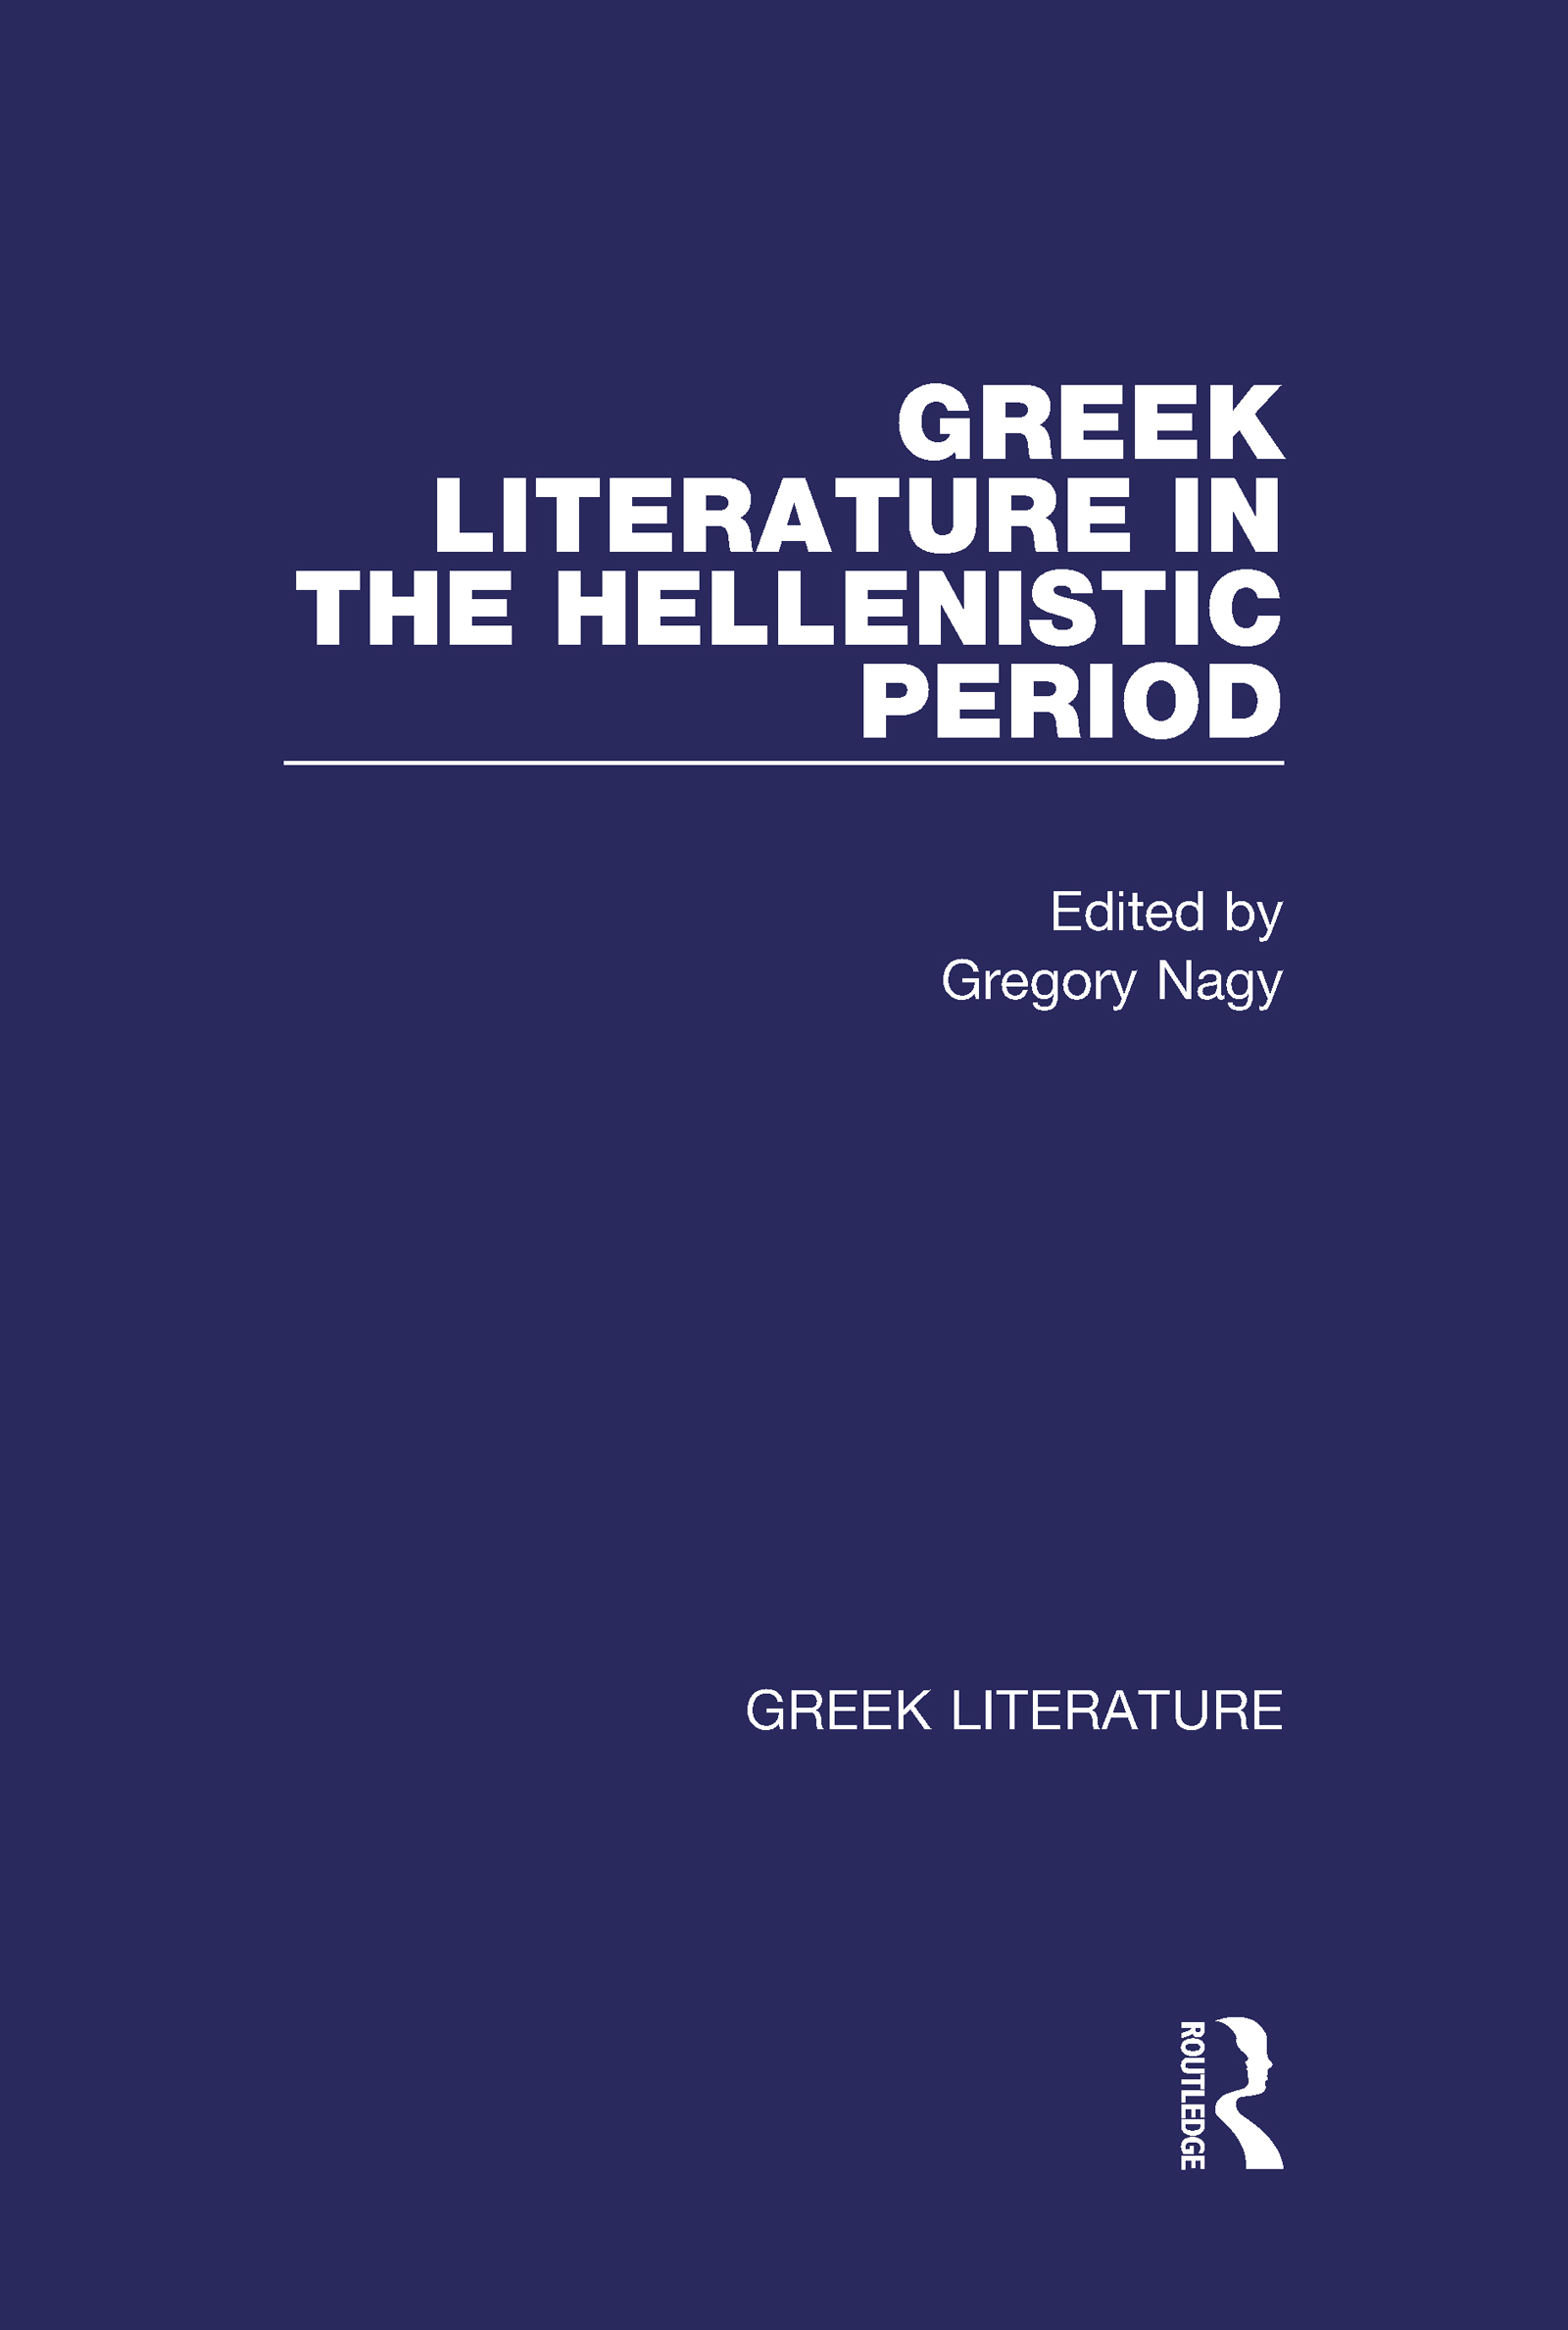 Greek Literature in the Hellenistic Period